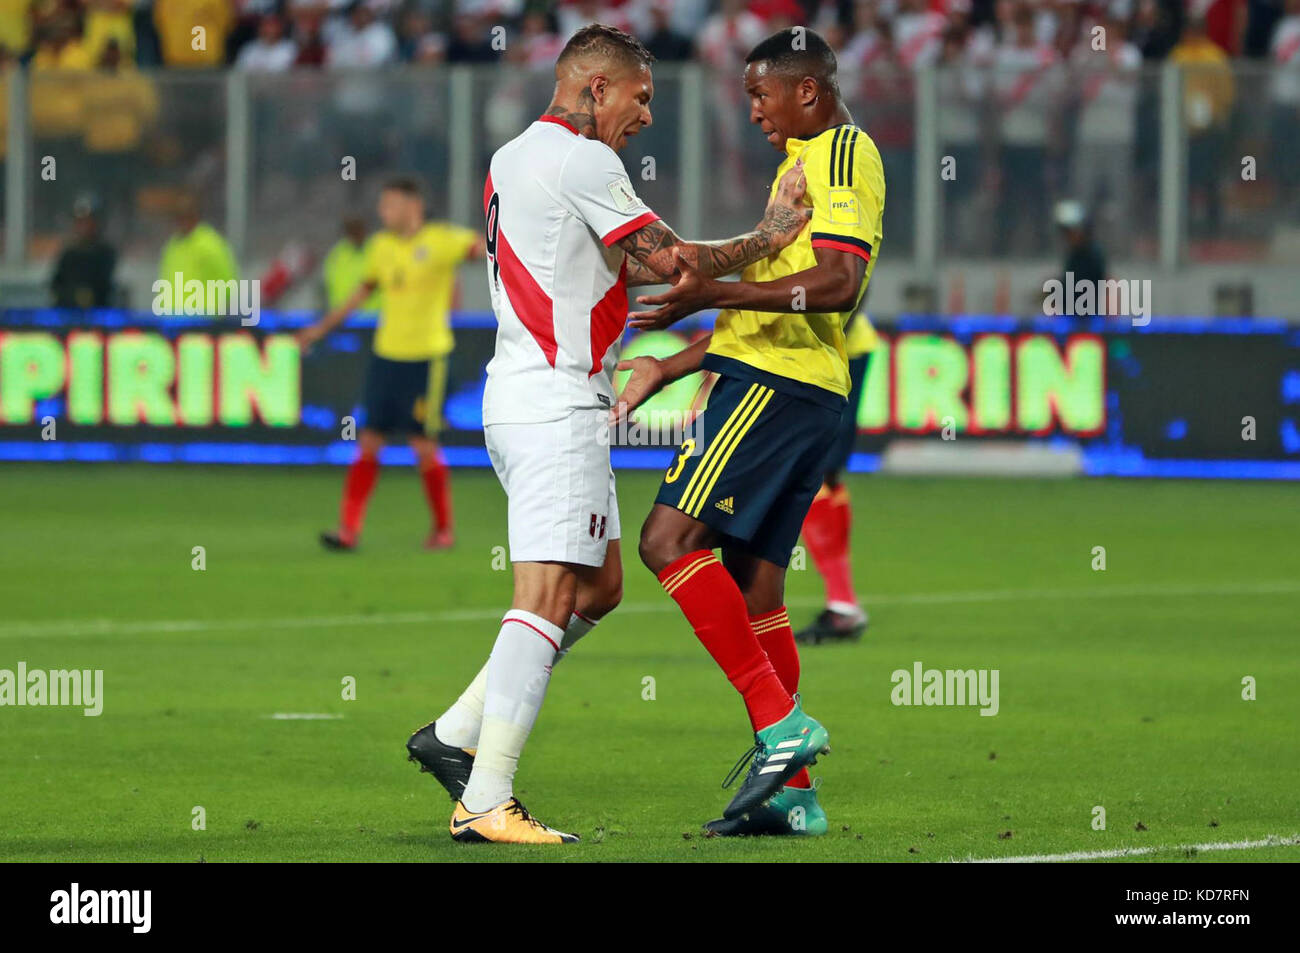 63dd357d0 Peru s Paolo Guerrero (L) and Colombia s Oscar Murillo (R) react during the  Russia 2018 FIFA World Cup qualifier match